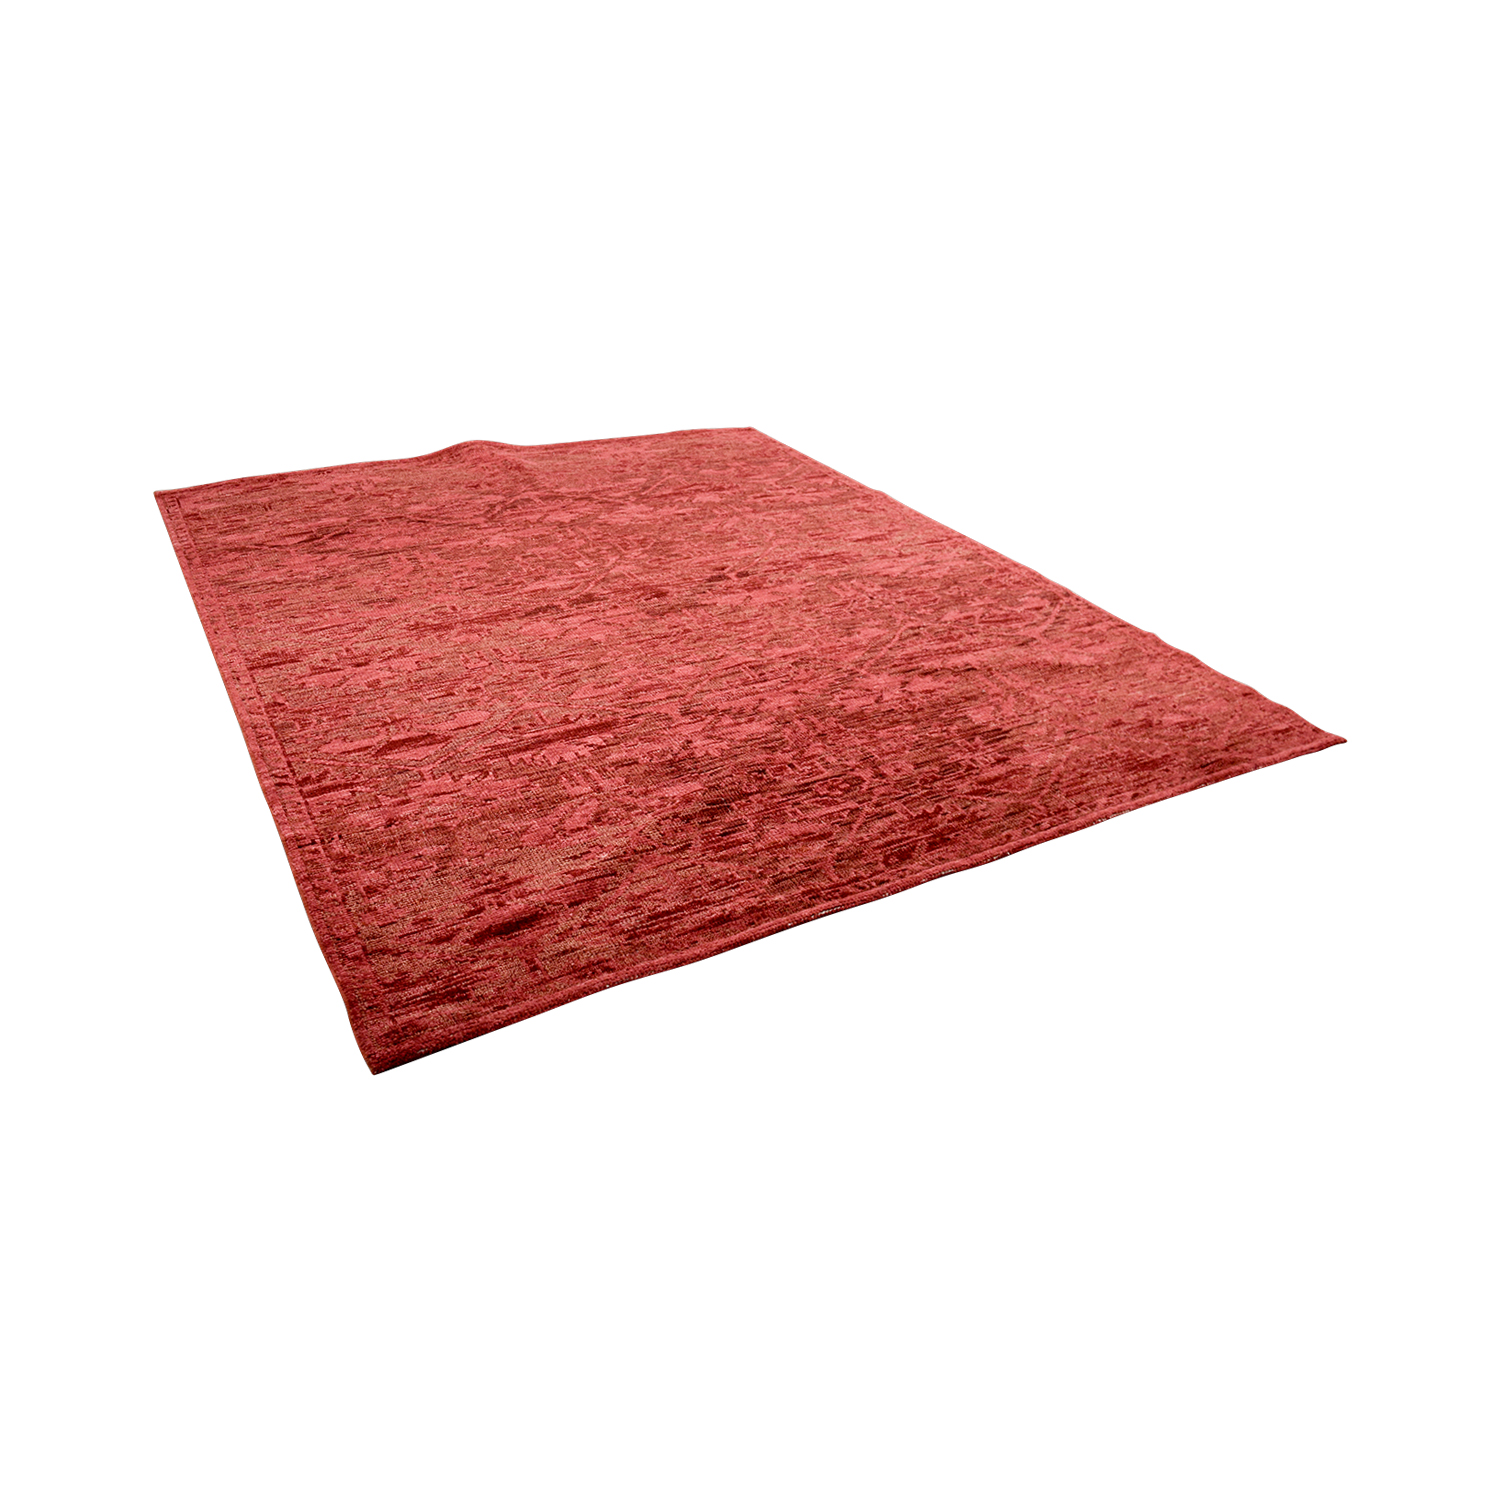 Obeetee Obeetee Hand Knotted Amira Paprika Wool Rug Decor